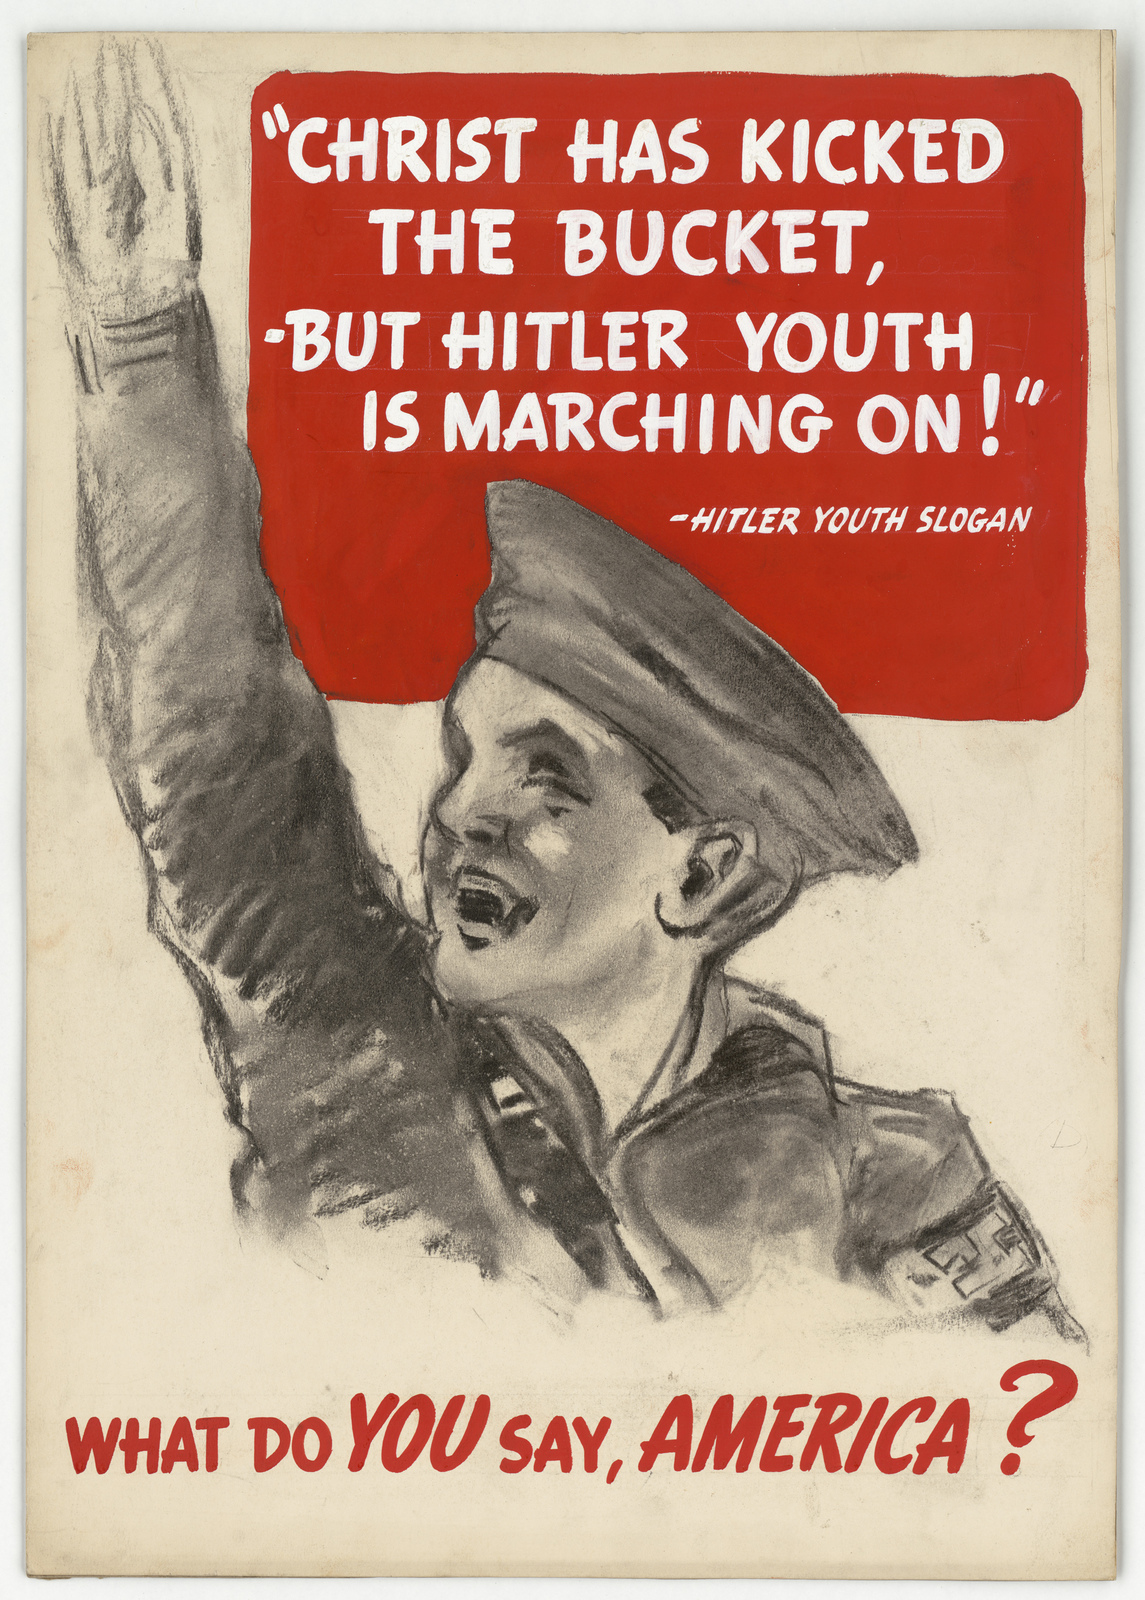 """Christ Has Kicked the Bucket, -But Hitler Youth is Marching ON!""- Hitler Youth Slogan.  What Do You Say America?"